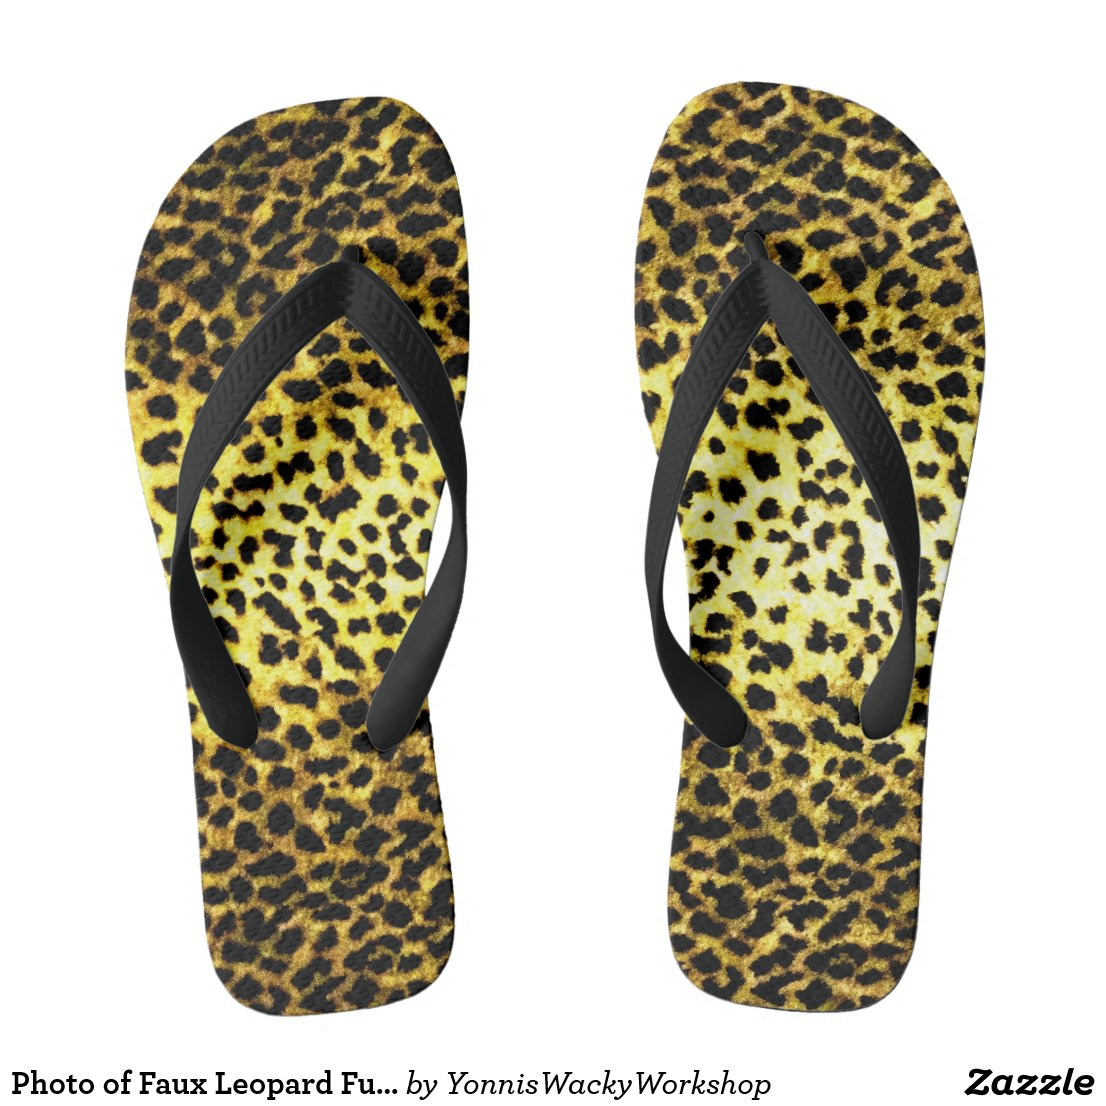 Photo of Faux Leopard Fur Print Wallpaper Flip Flops